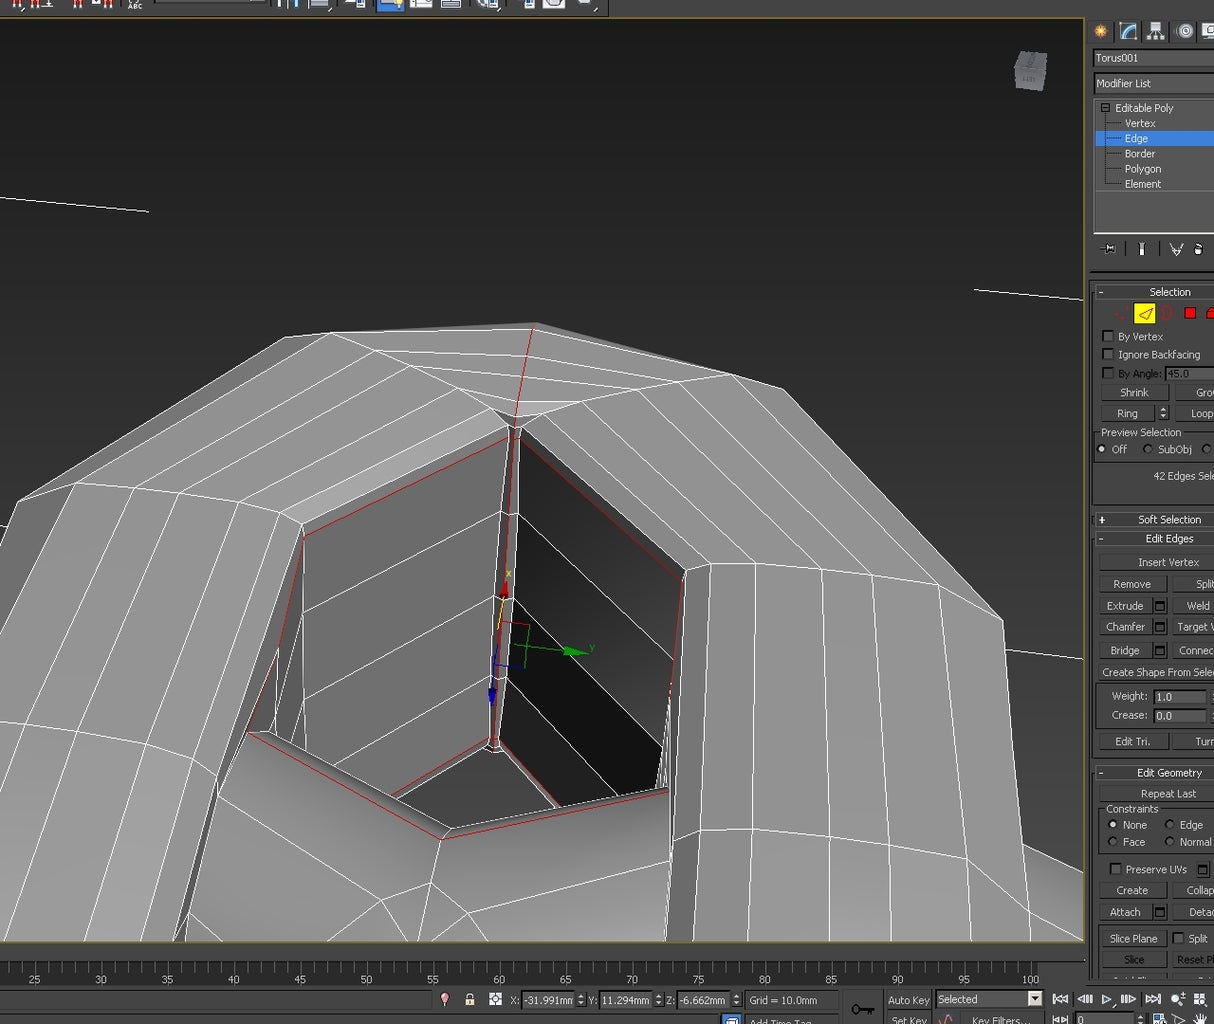 3d Modeling: Creating the Basic Pattern - Adding the Ends